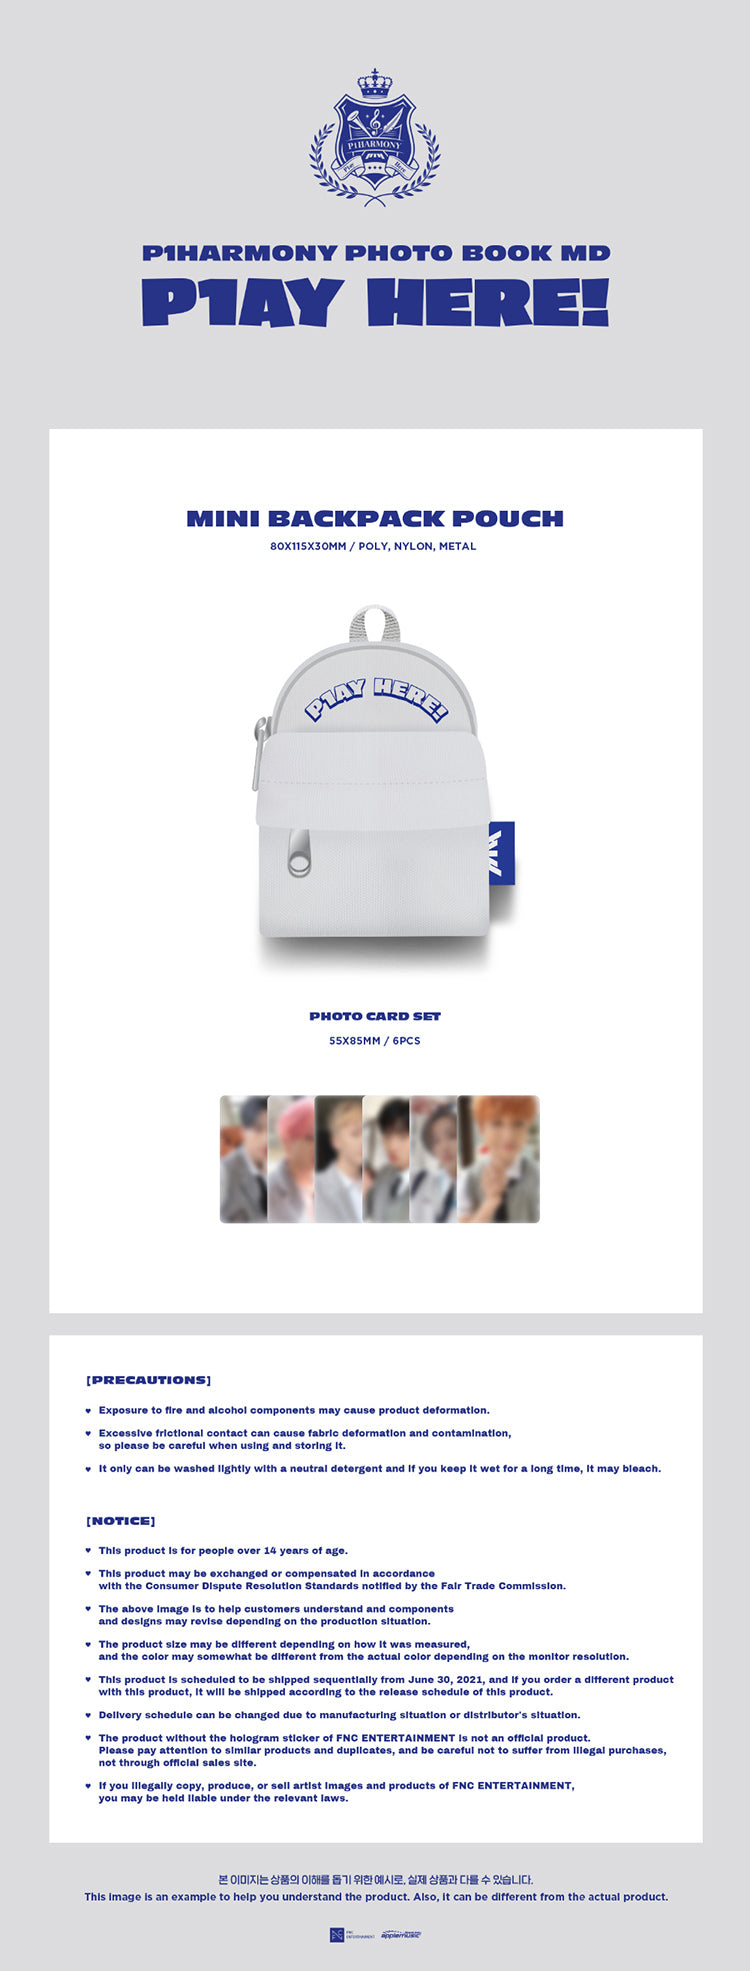 P1Harmony - Photo Book MD - Mini Backpack Pouch